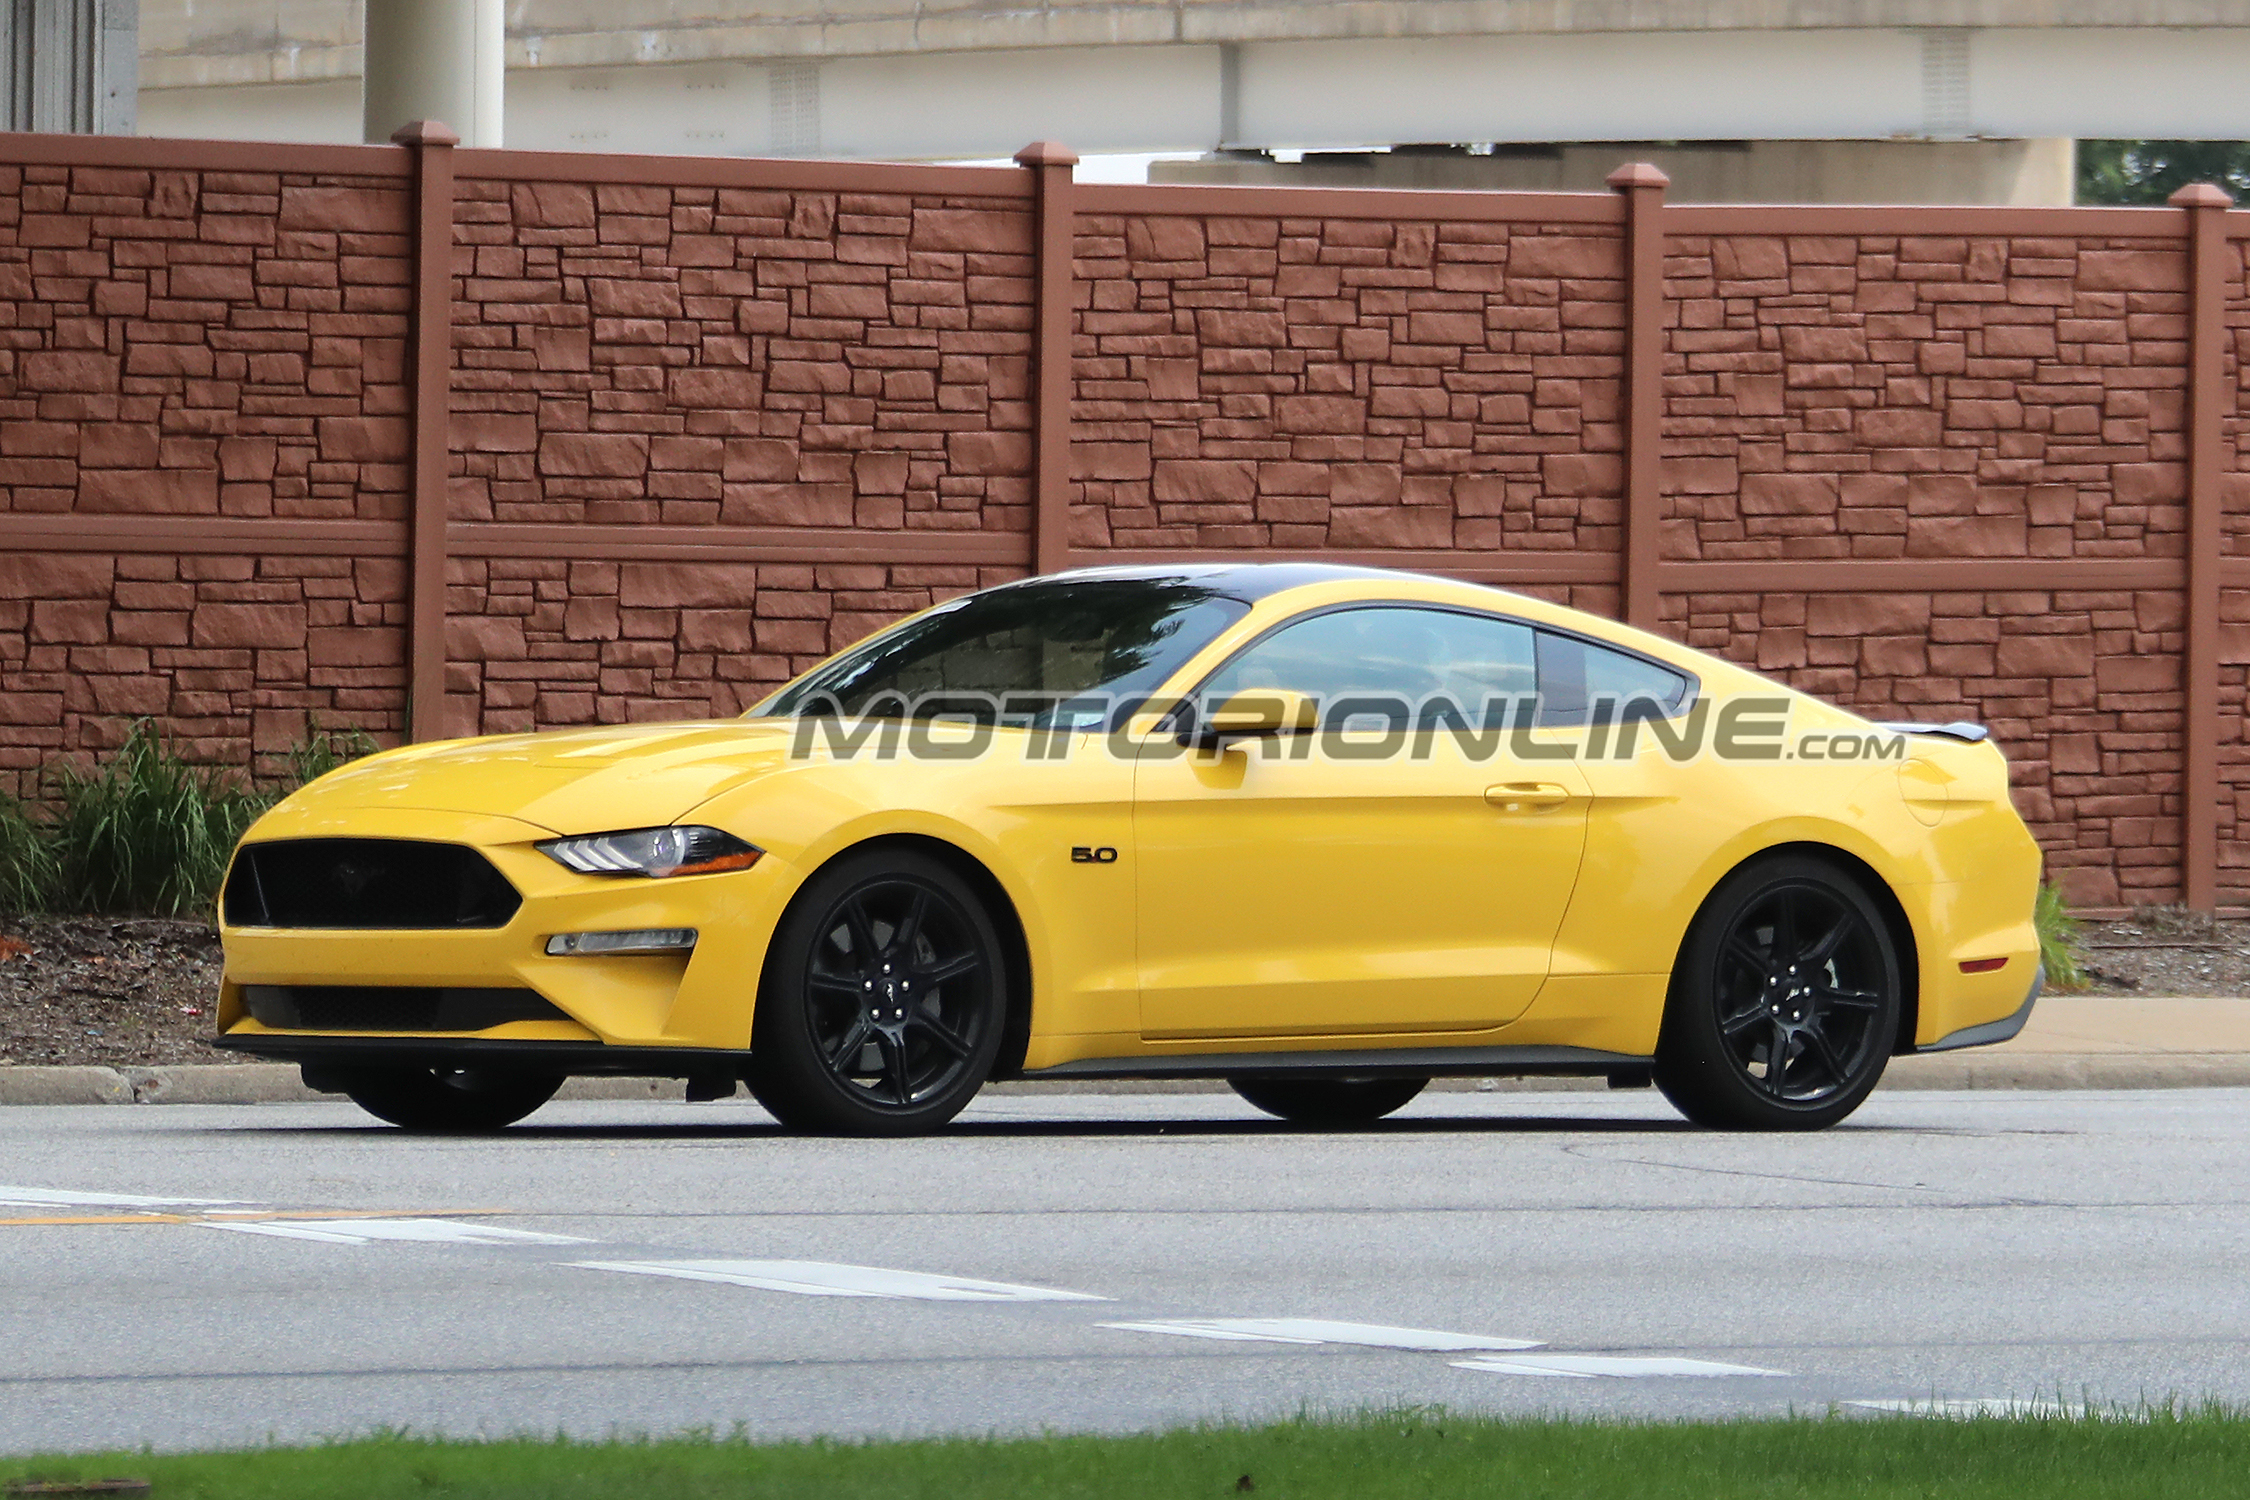 Ford Mustang GT MY 2018 Black Accent Pack foto spia 15 Luglio 2017